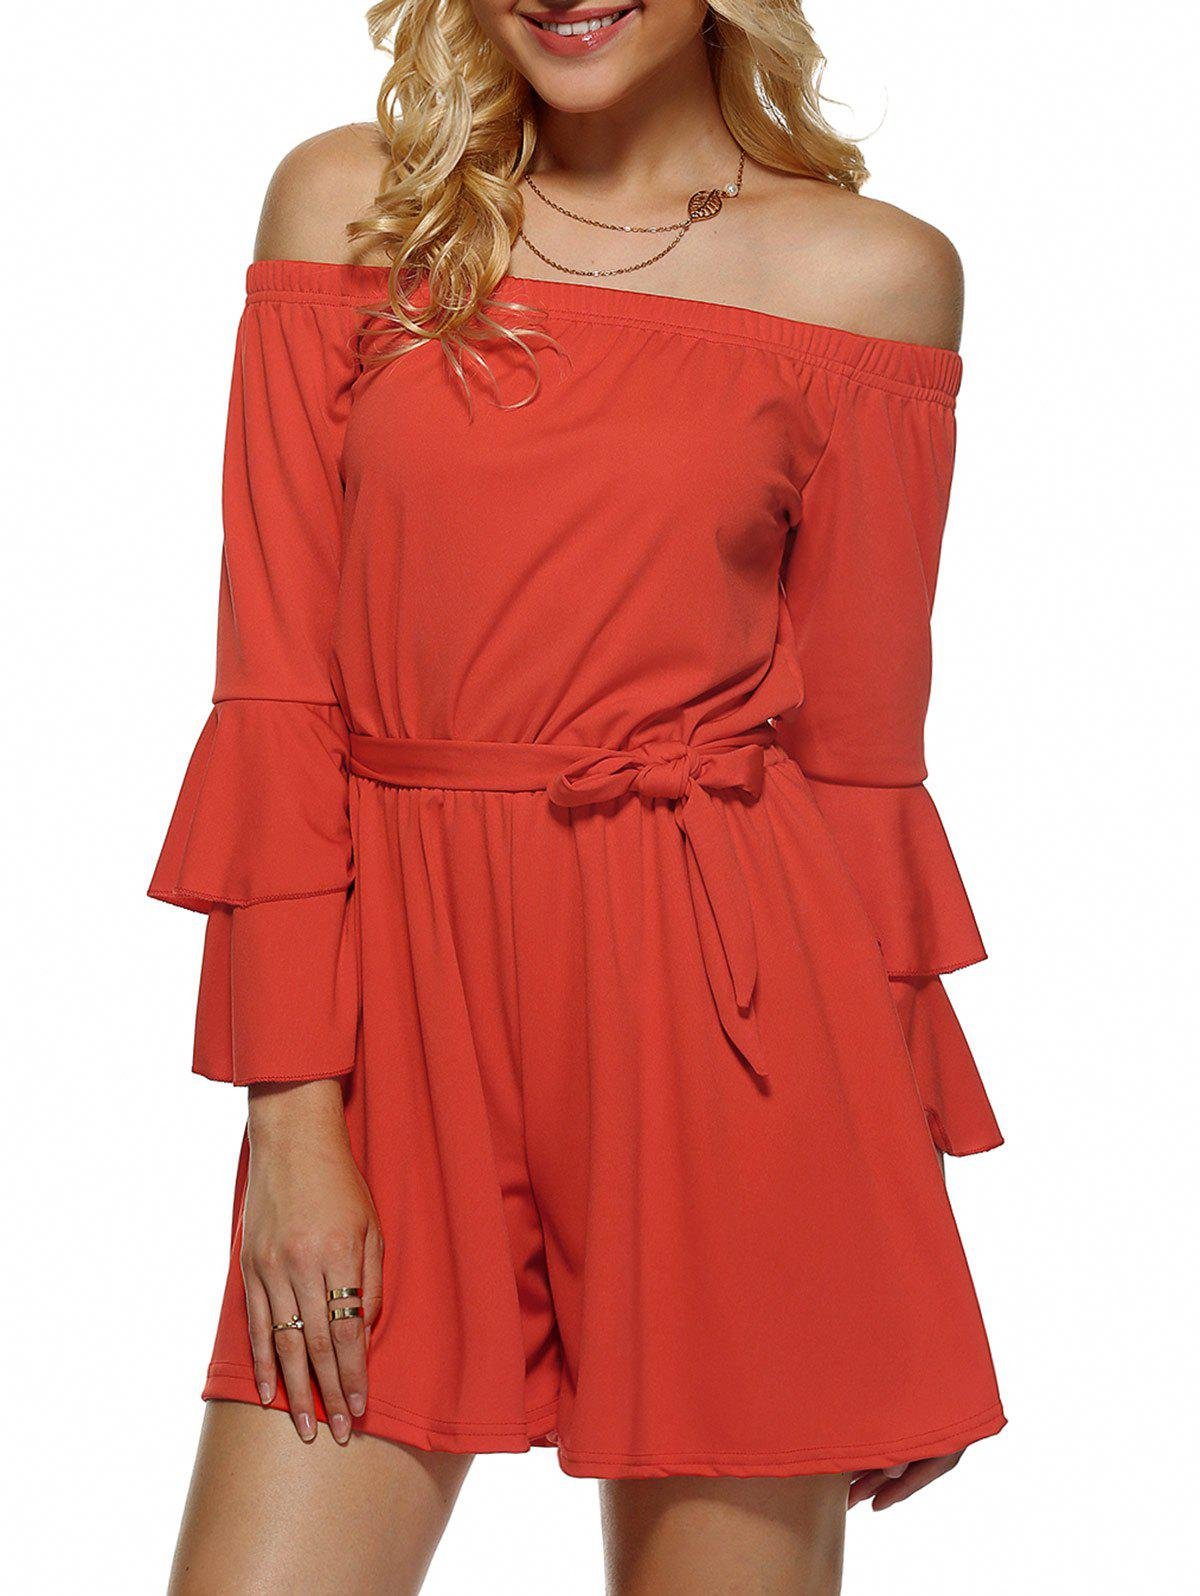 Off-The-Shoulder Flounced Flare Sleeves Romper - JACINTH XL